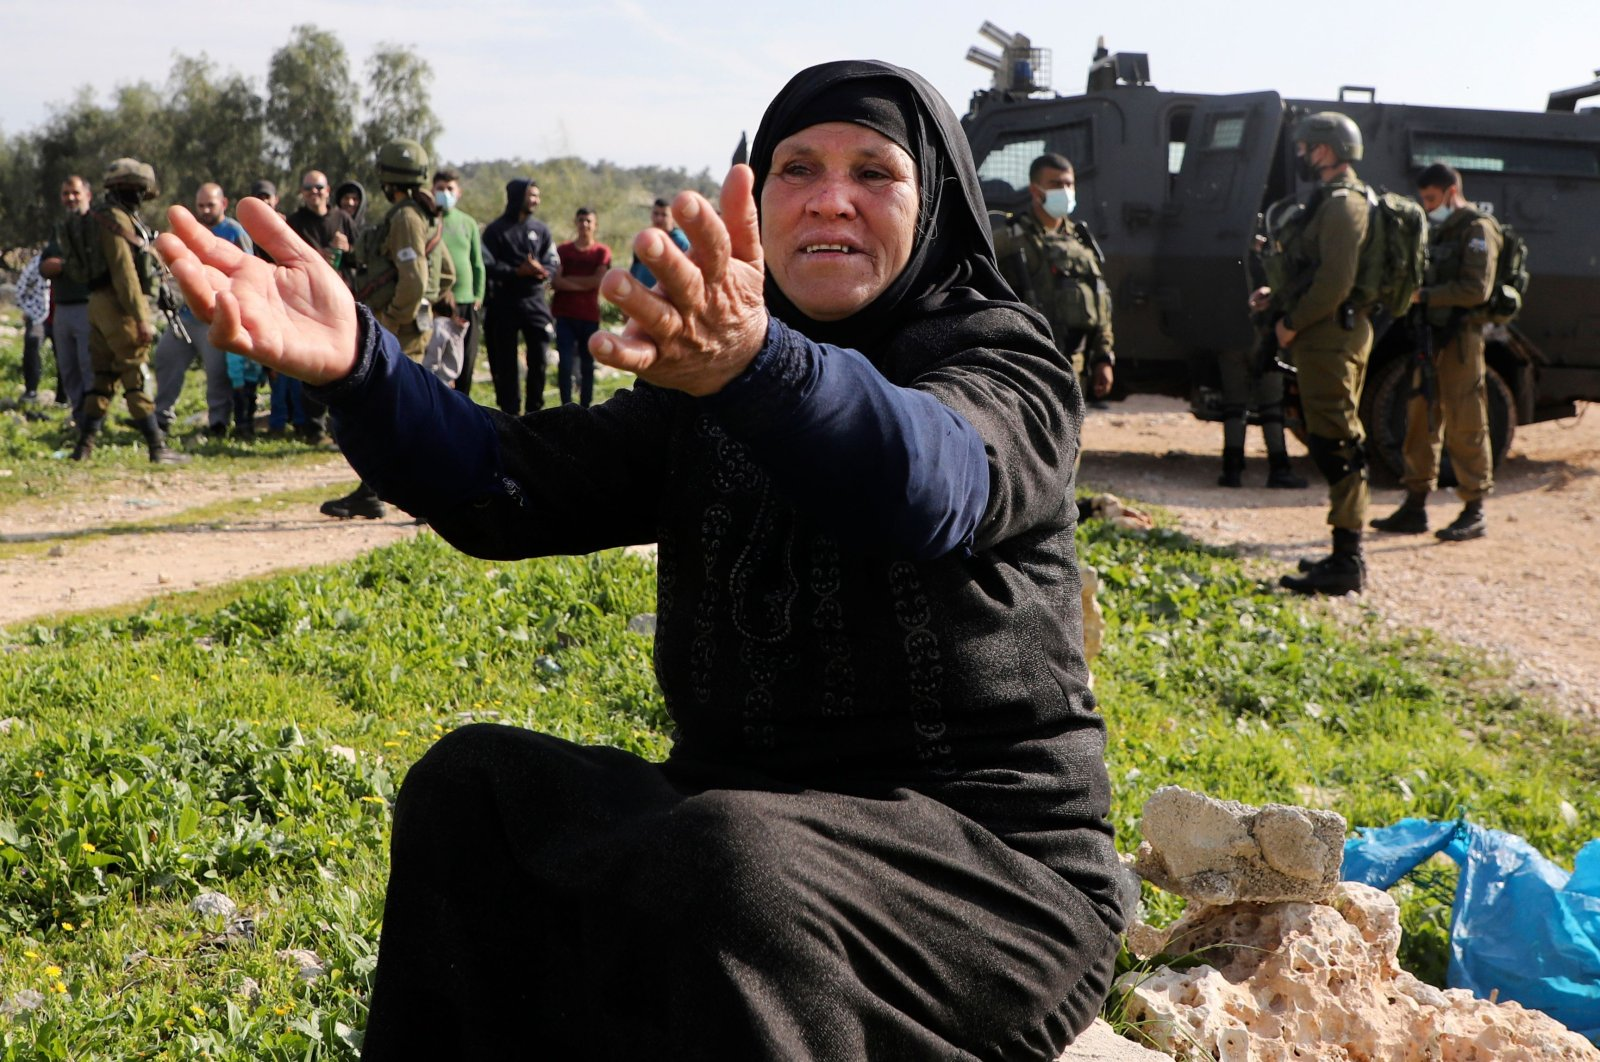 Palestinian farmers protest after Israeli security forces uprooted olive trees reportedly located within Area C in the occupied West Bank village of Deir Ballut, Palestine, Jan. 6, 2021. (AFP Photo)